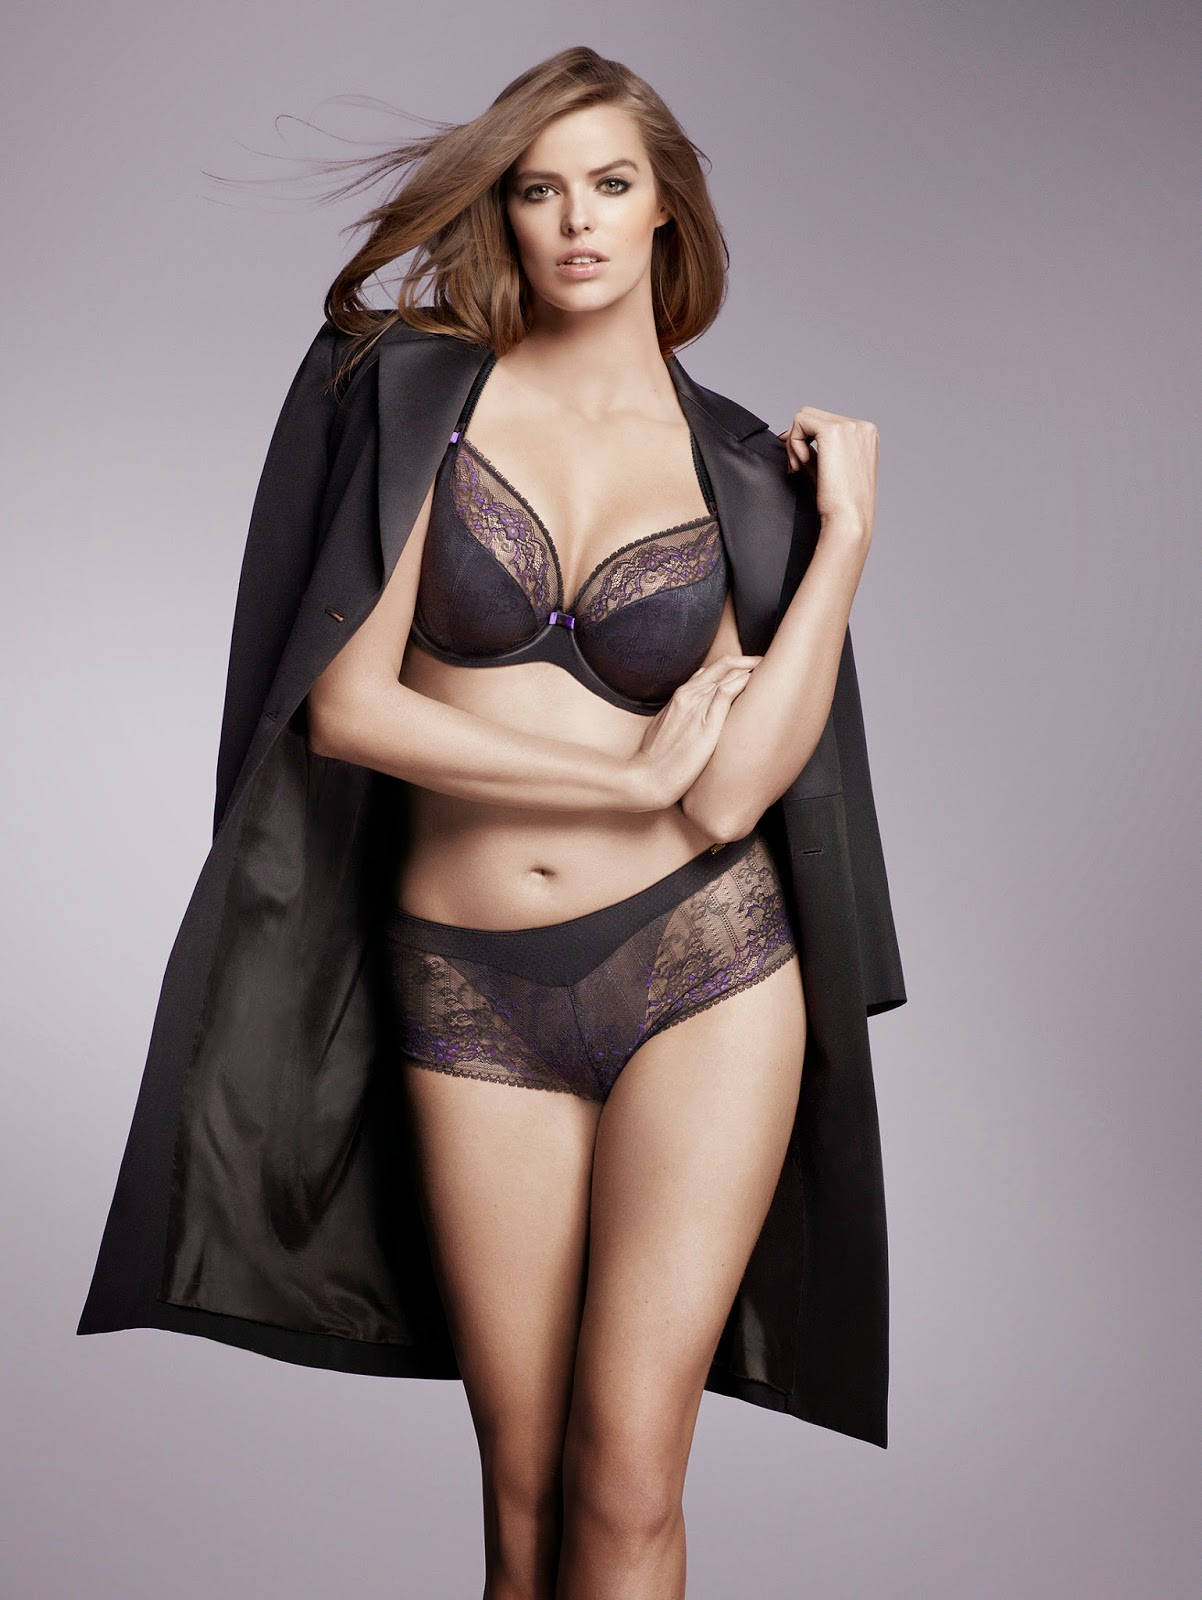 Superbe – The New Chantelle Lingerie DD+ Range